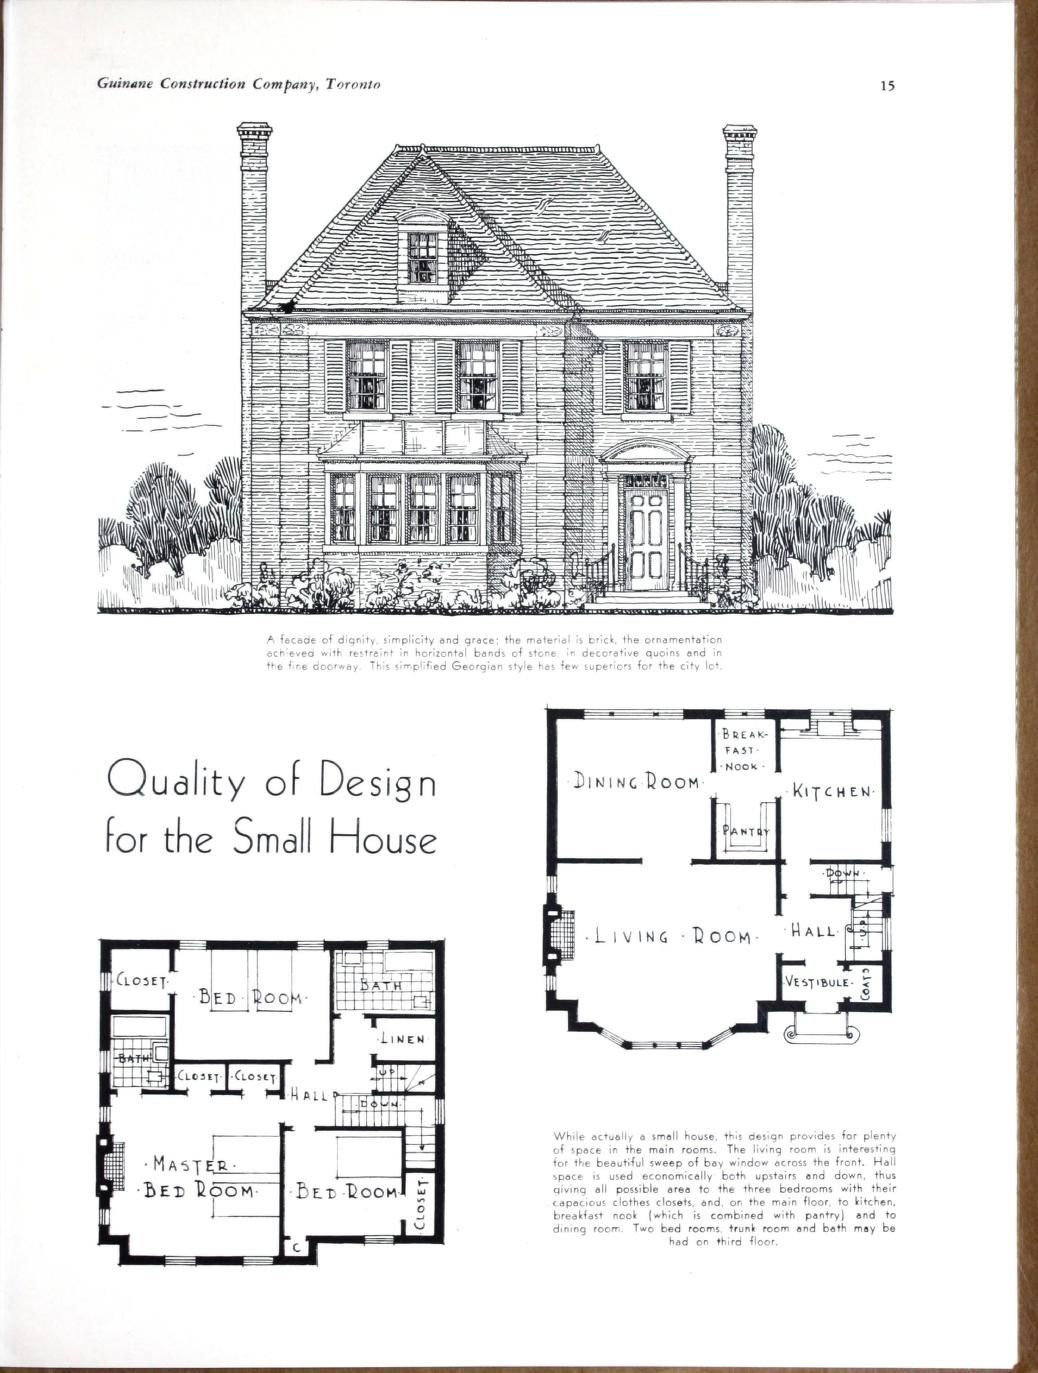 Planning Building Financing The Home By Guinane Construction Company Published 1932 In 2021 Vintage House Plans House Floor Plans House Plans